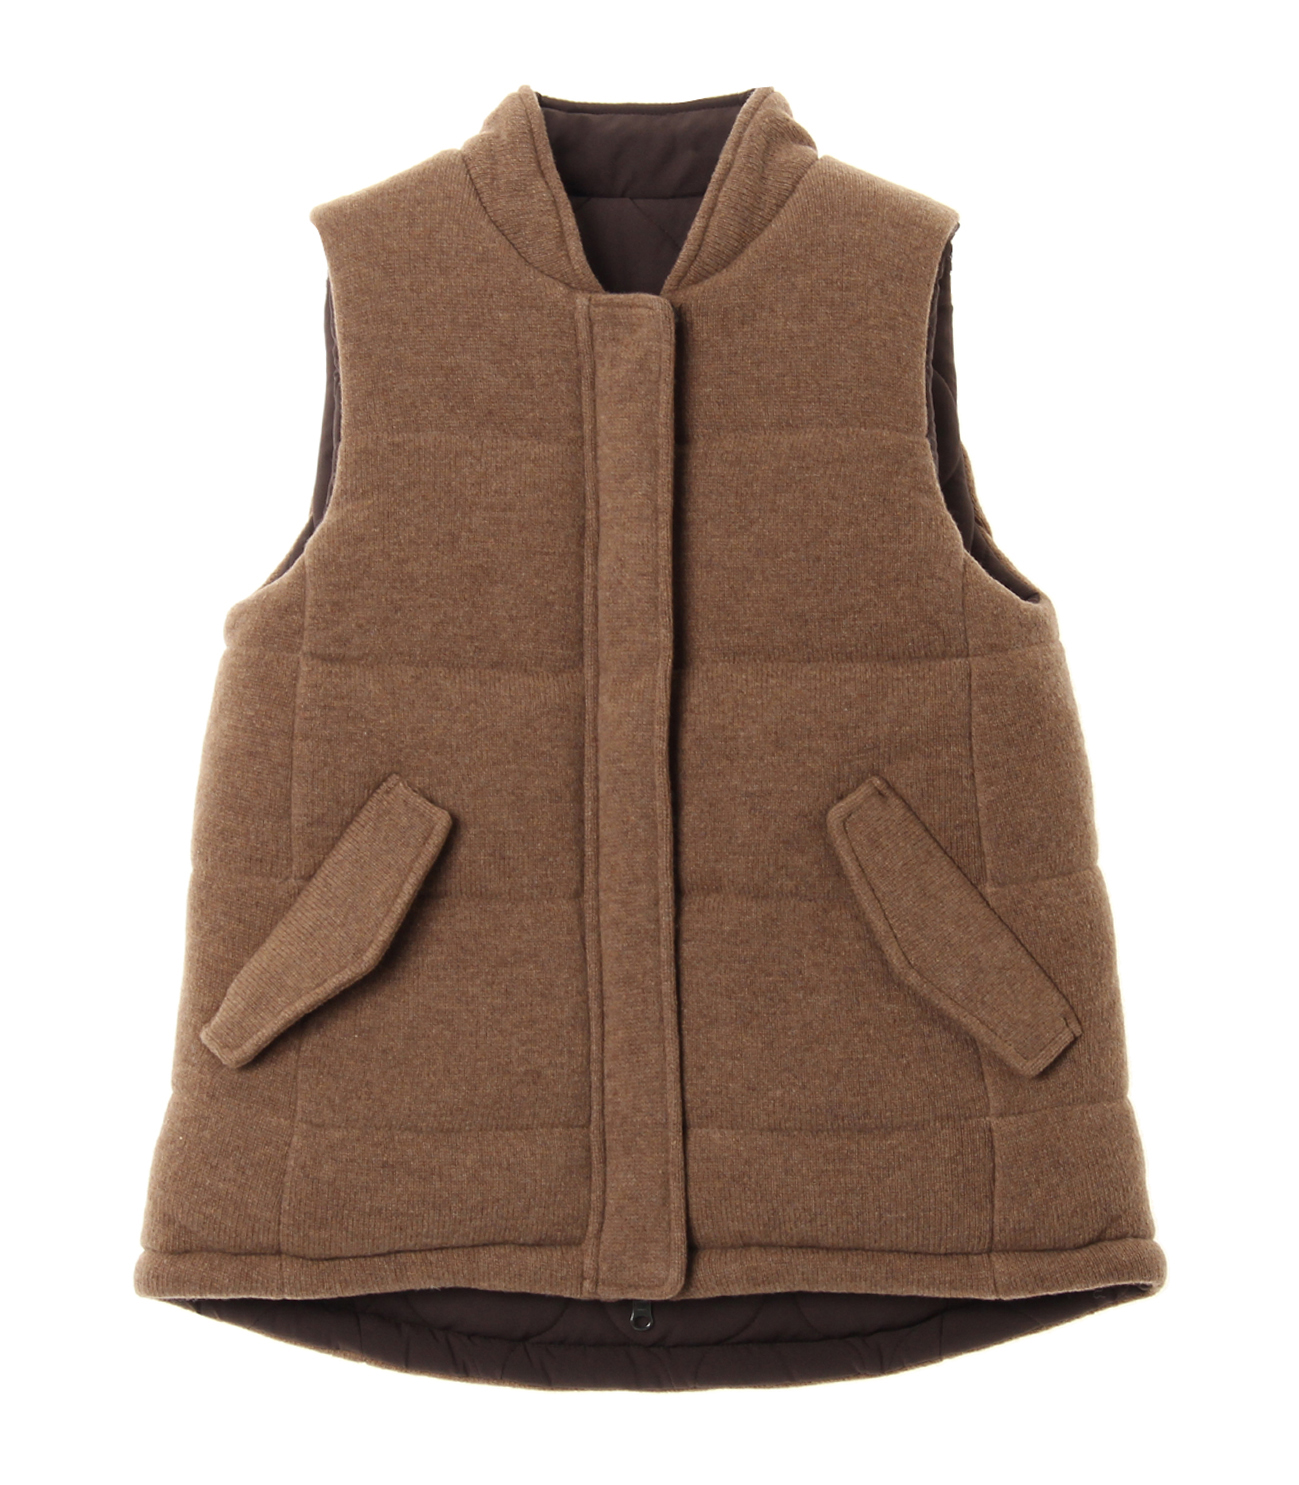 Wool outfit reversible outervest 詳細画像 brown 1